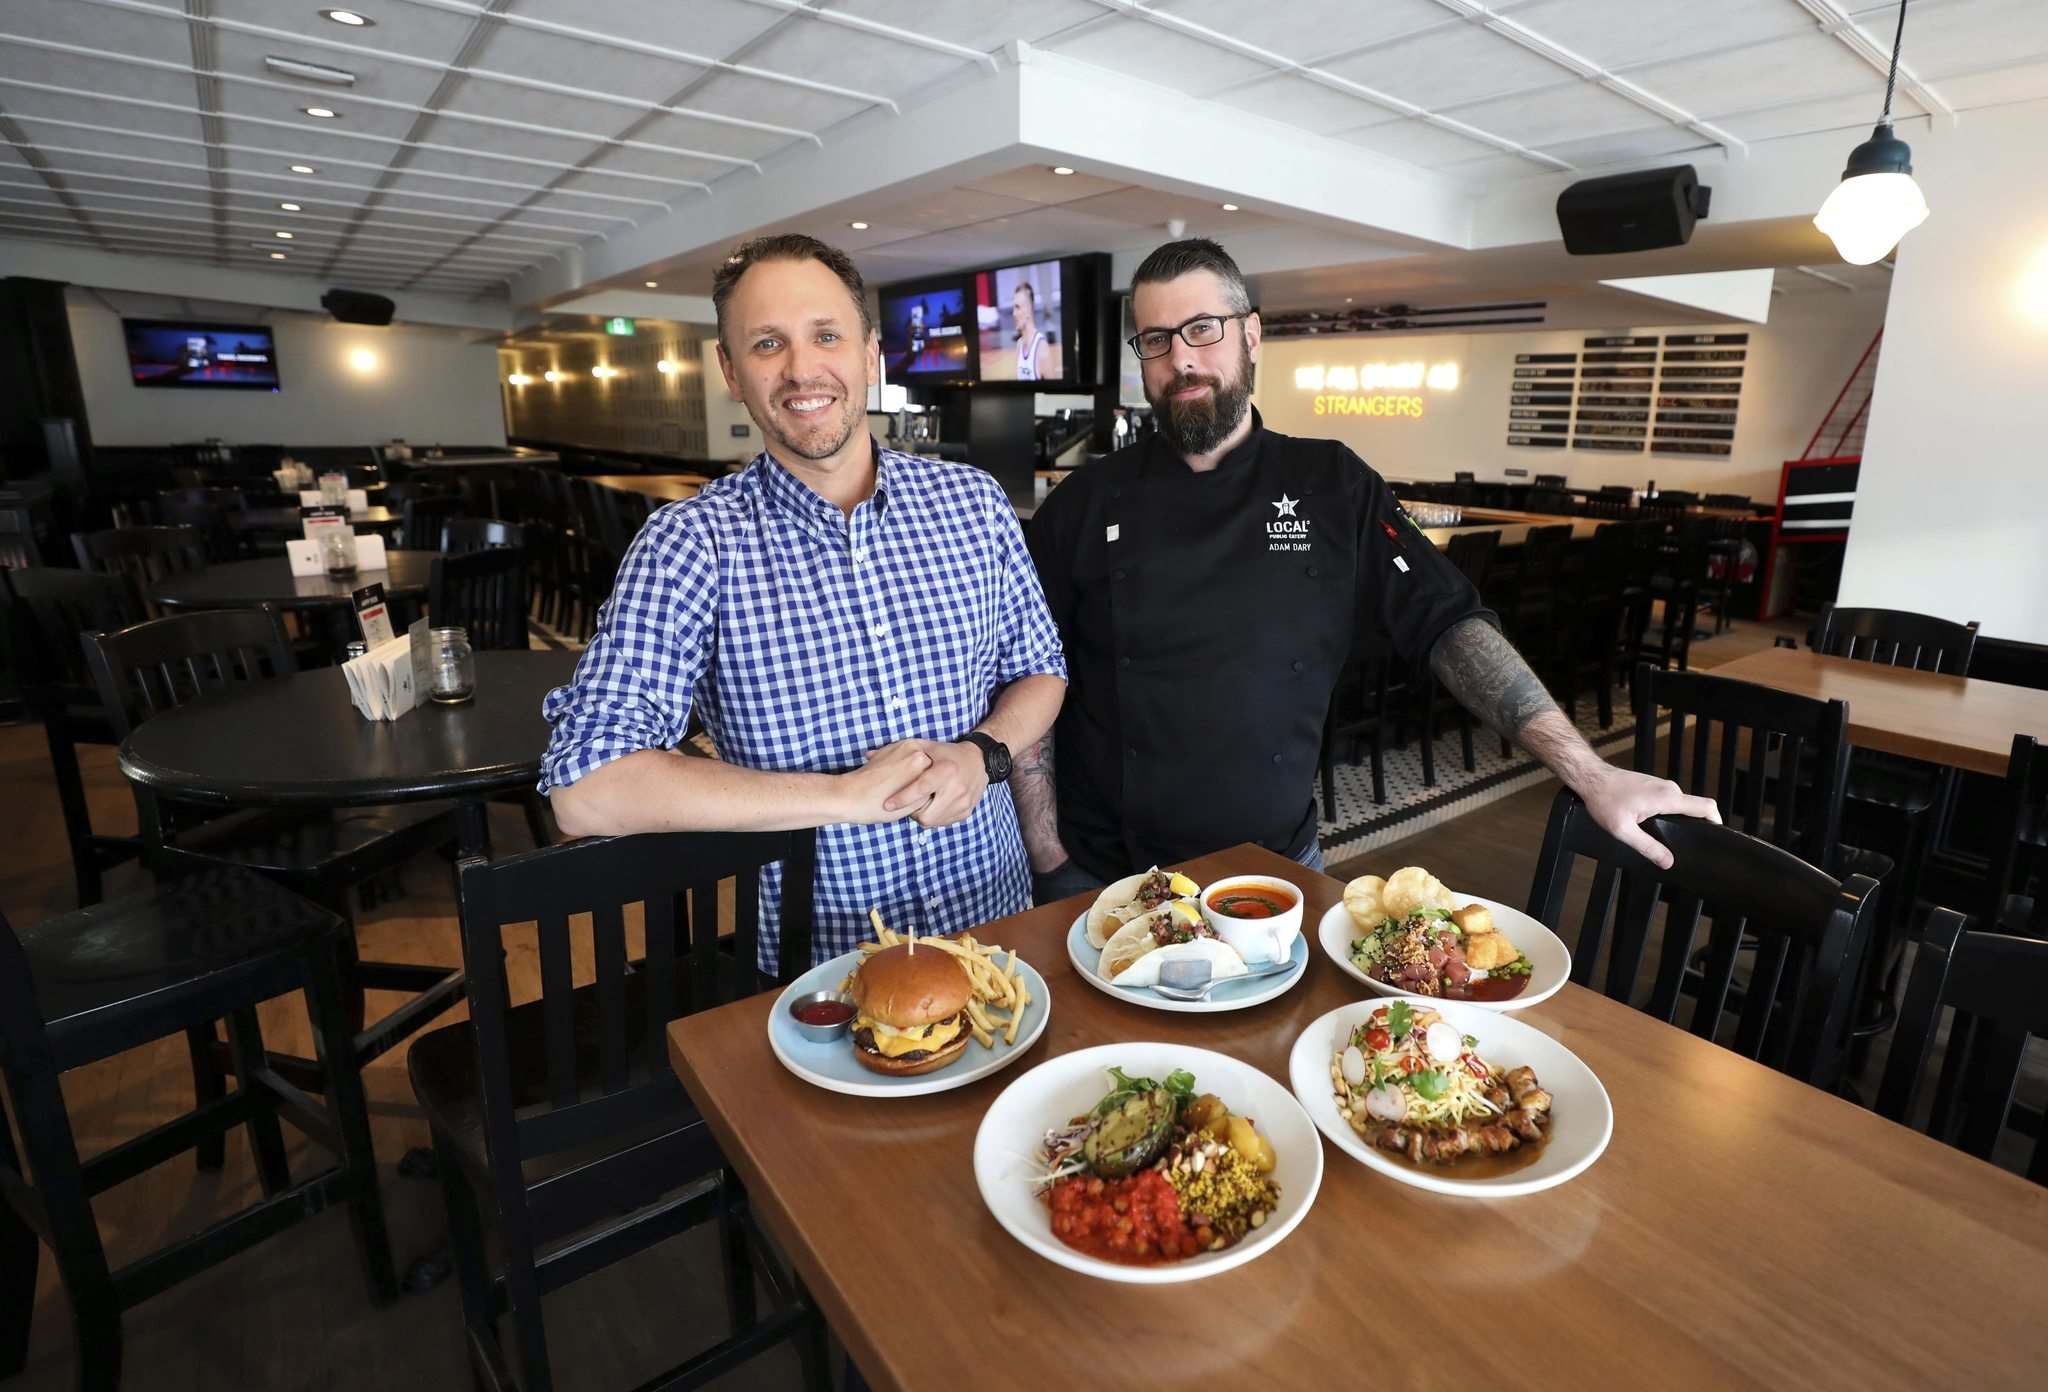 Delicious food a big reason Local Public Eatery chain is growing across the country